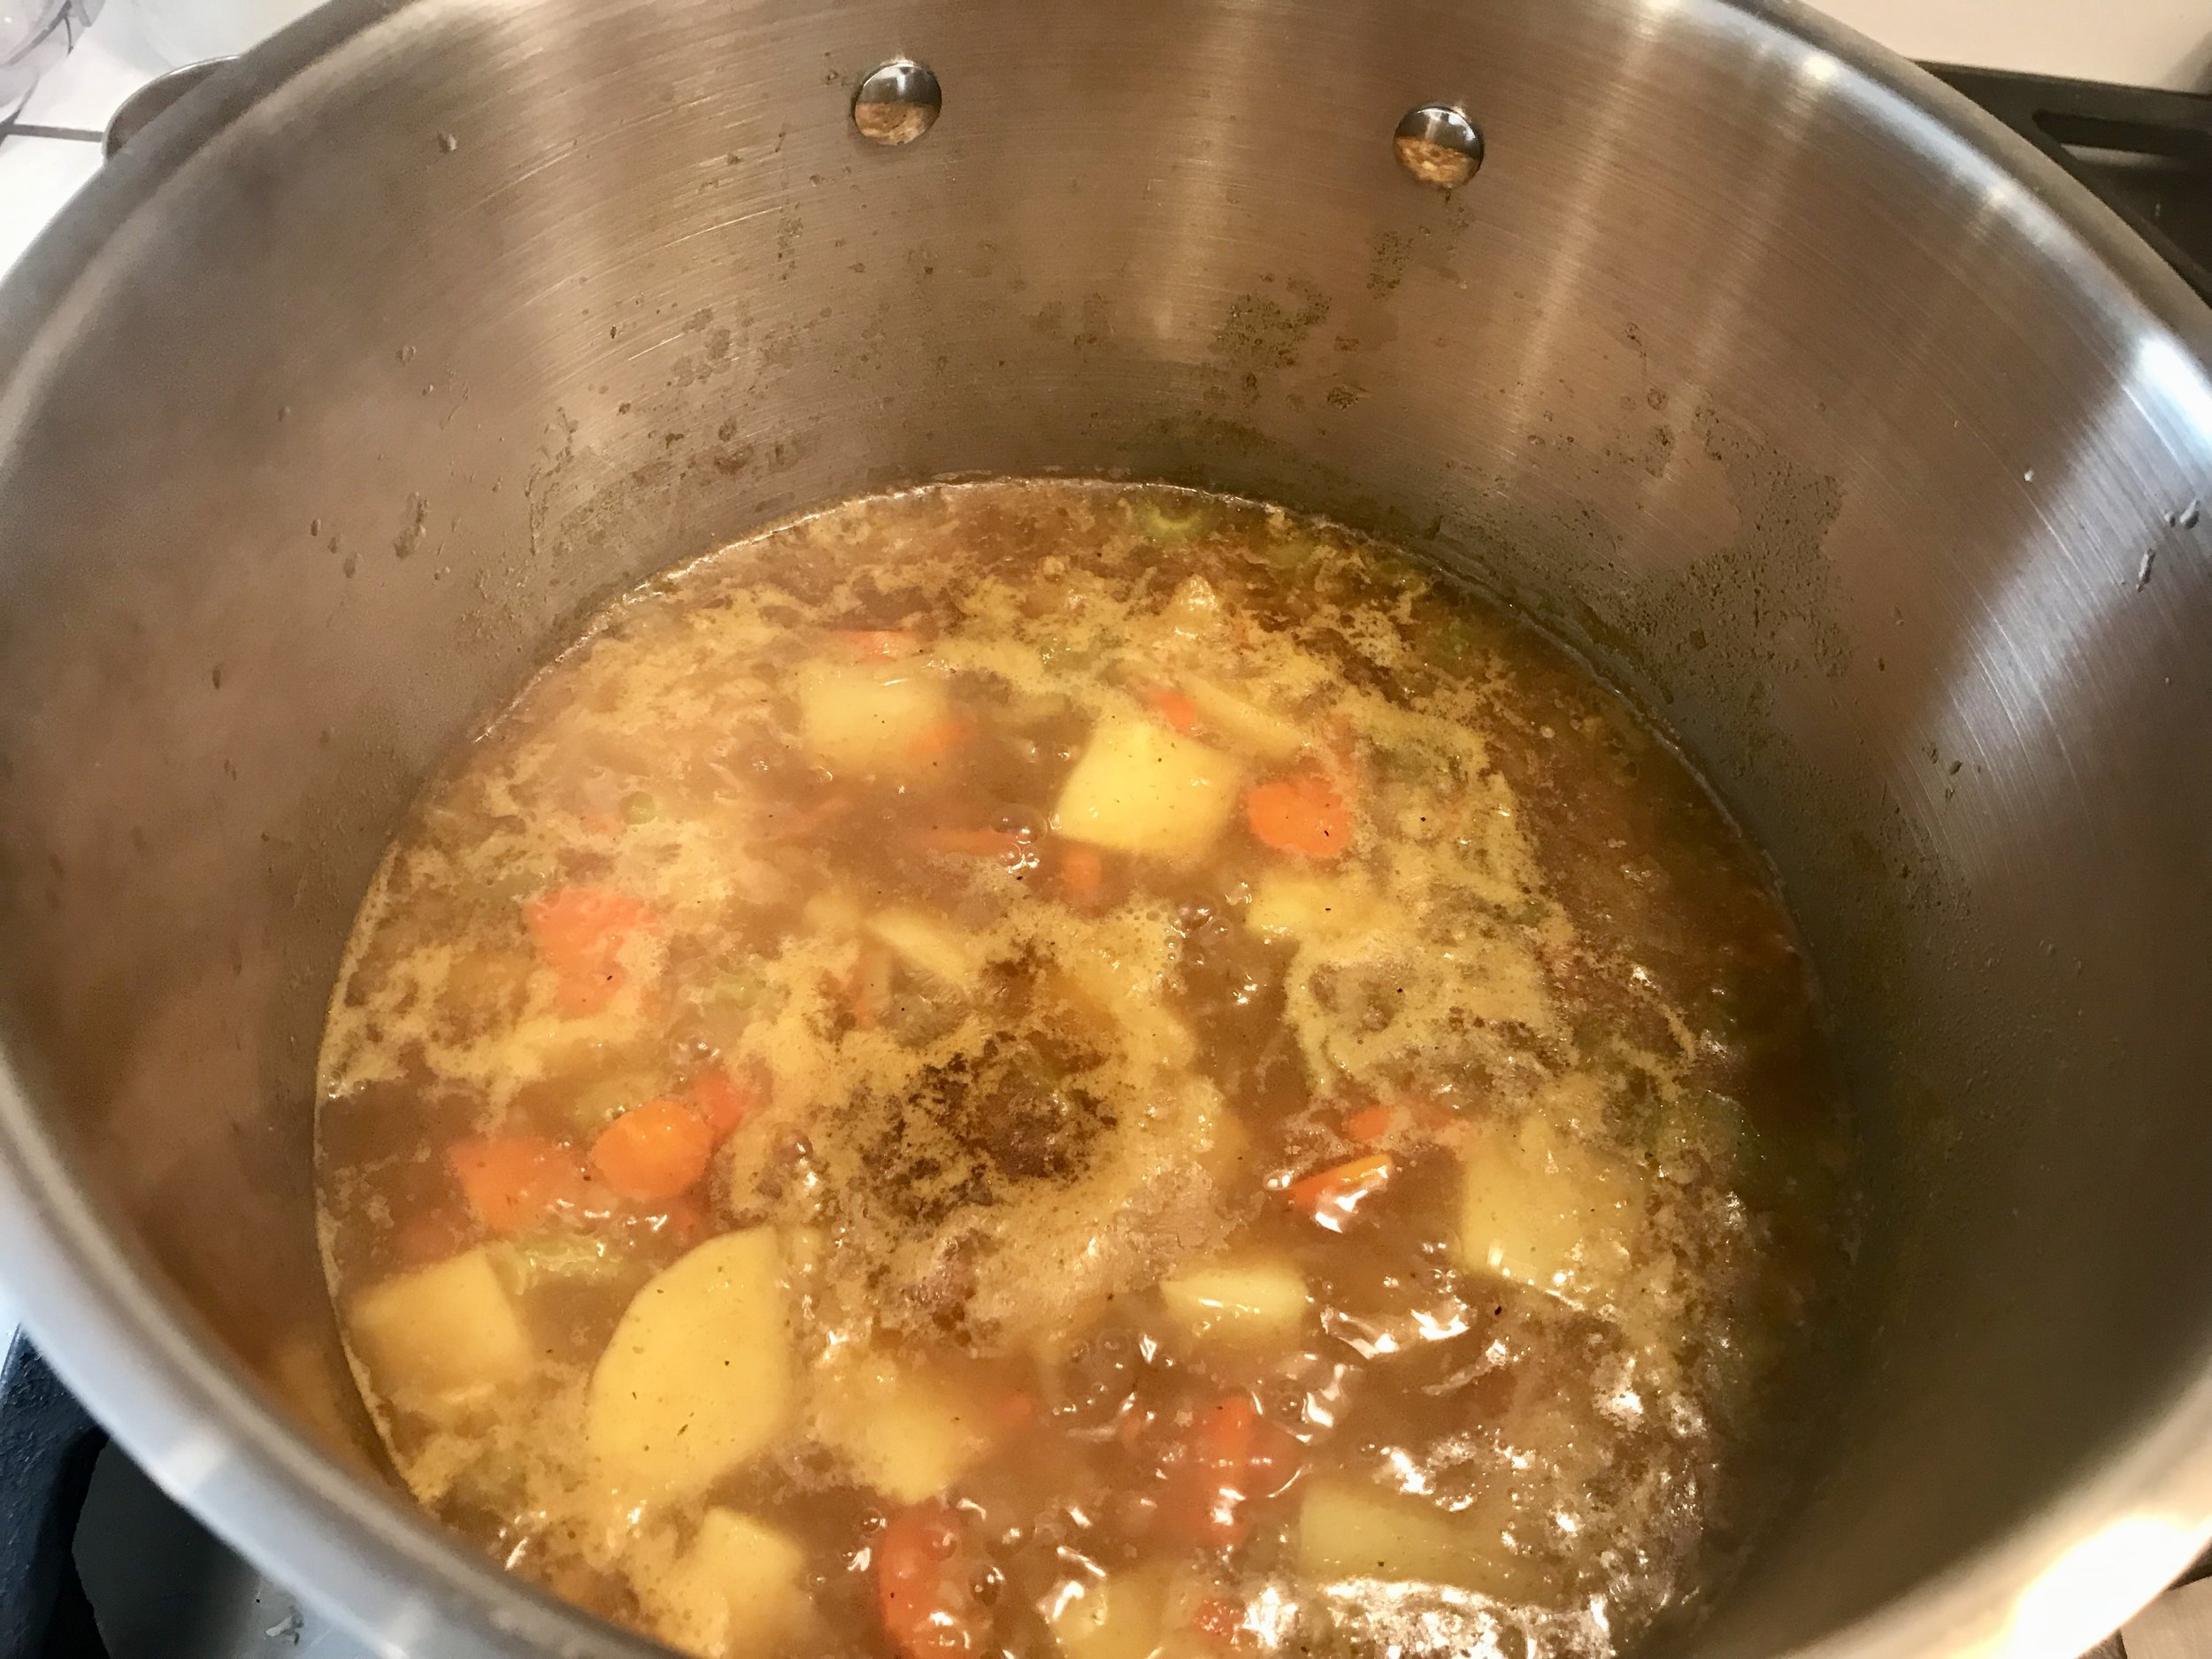 Add water (I used a reduced sodium vegetable broth and skipped the added salt) and bring to a boil, then simmer for 20 minutes or until veggies are soft. Add the cashew butter and coconut milk (I used reduced fat coconut milk) Blend until smooth with an immersion blender or transfer to a blender when soup has cooled a bit.